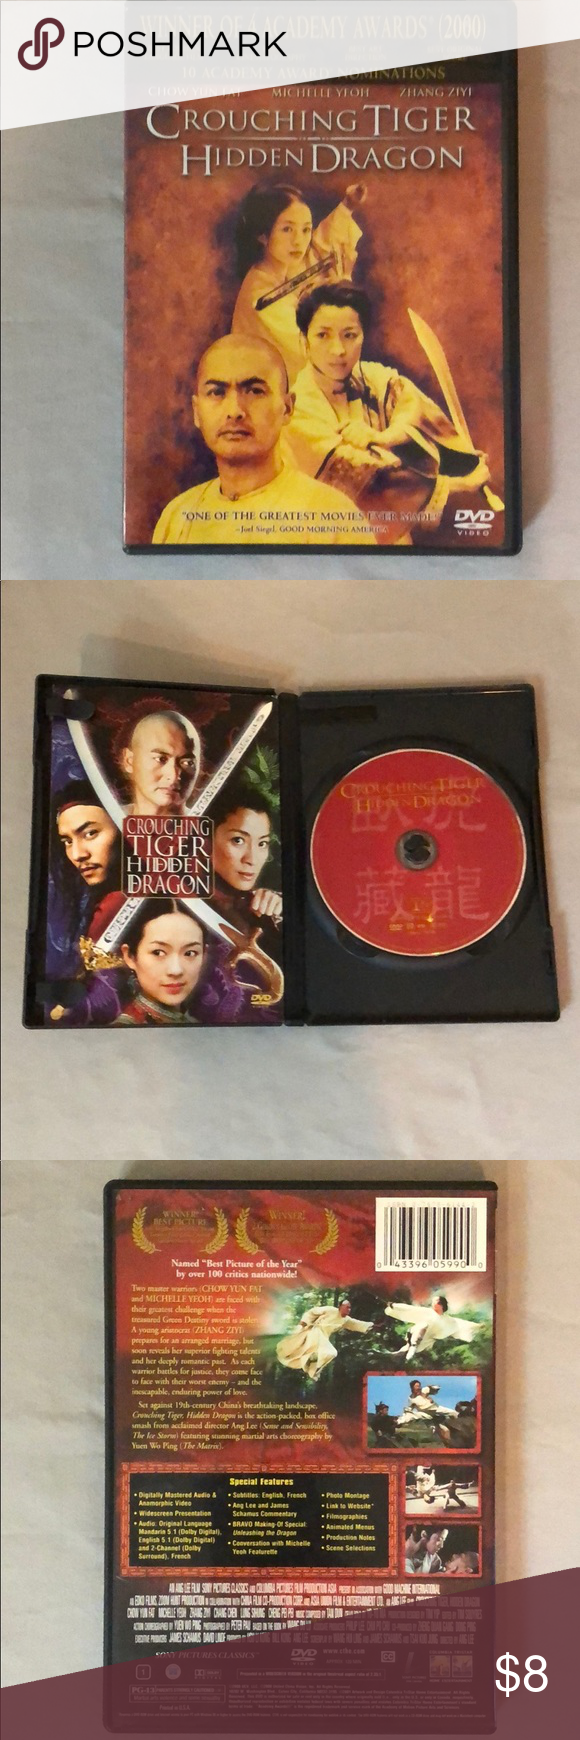 Crouching Tiger Hidden Dragon DVD Used I just added this listing on Poshmark: Crouching Tiger Hidden Dragon DVD Used.